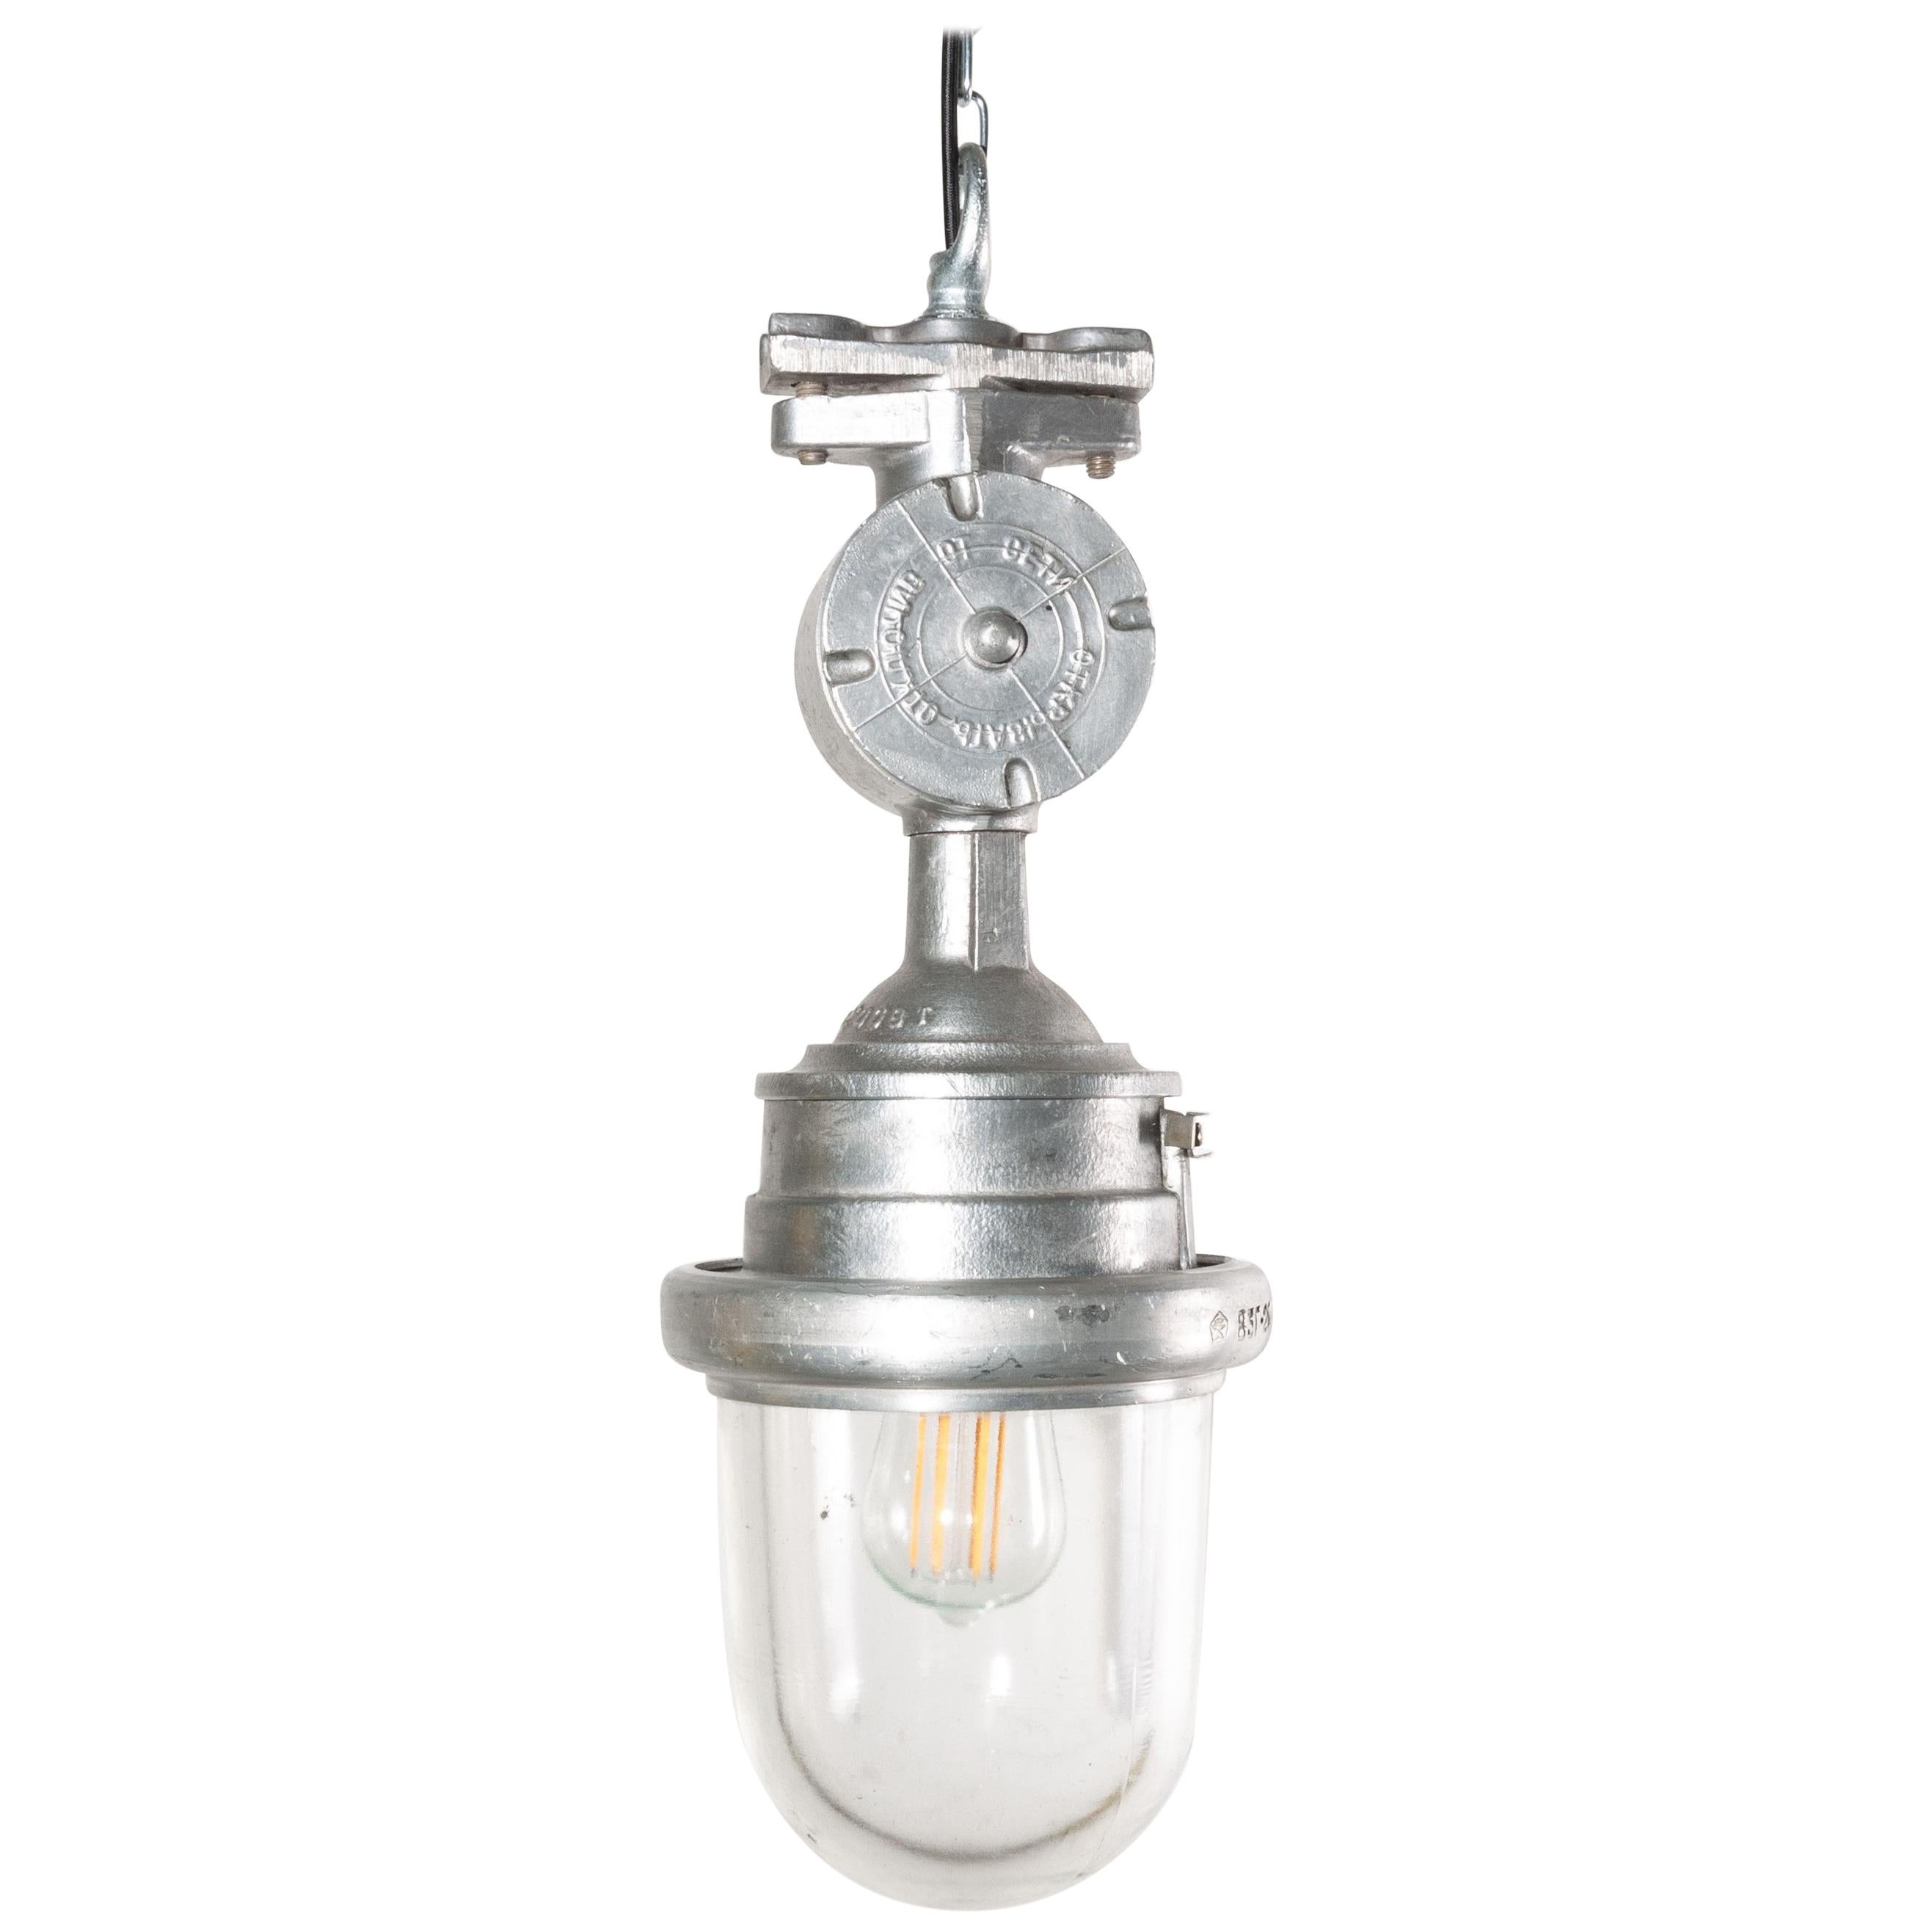 1960s Industrial Explosion Proof Ceiling Pendant Lamps